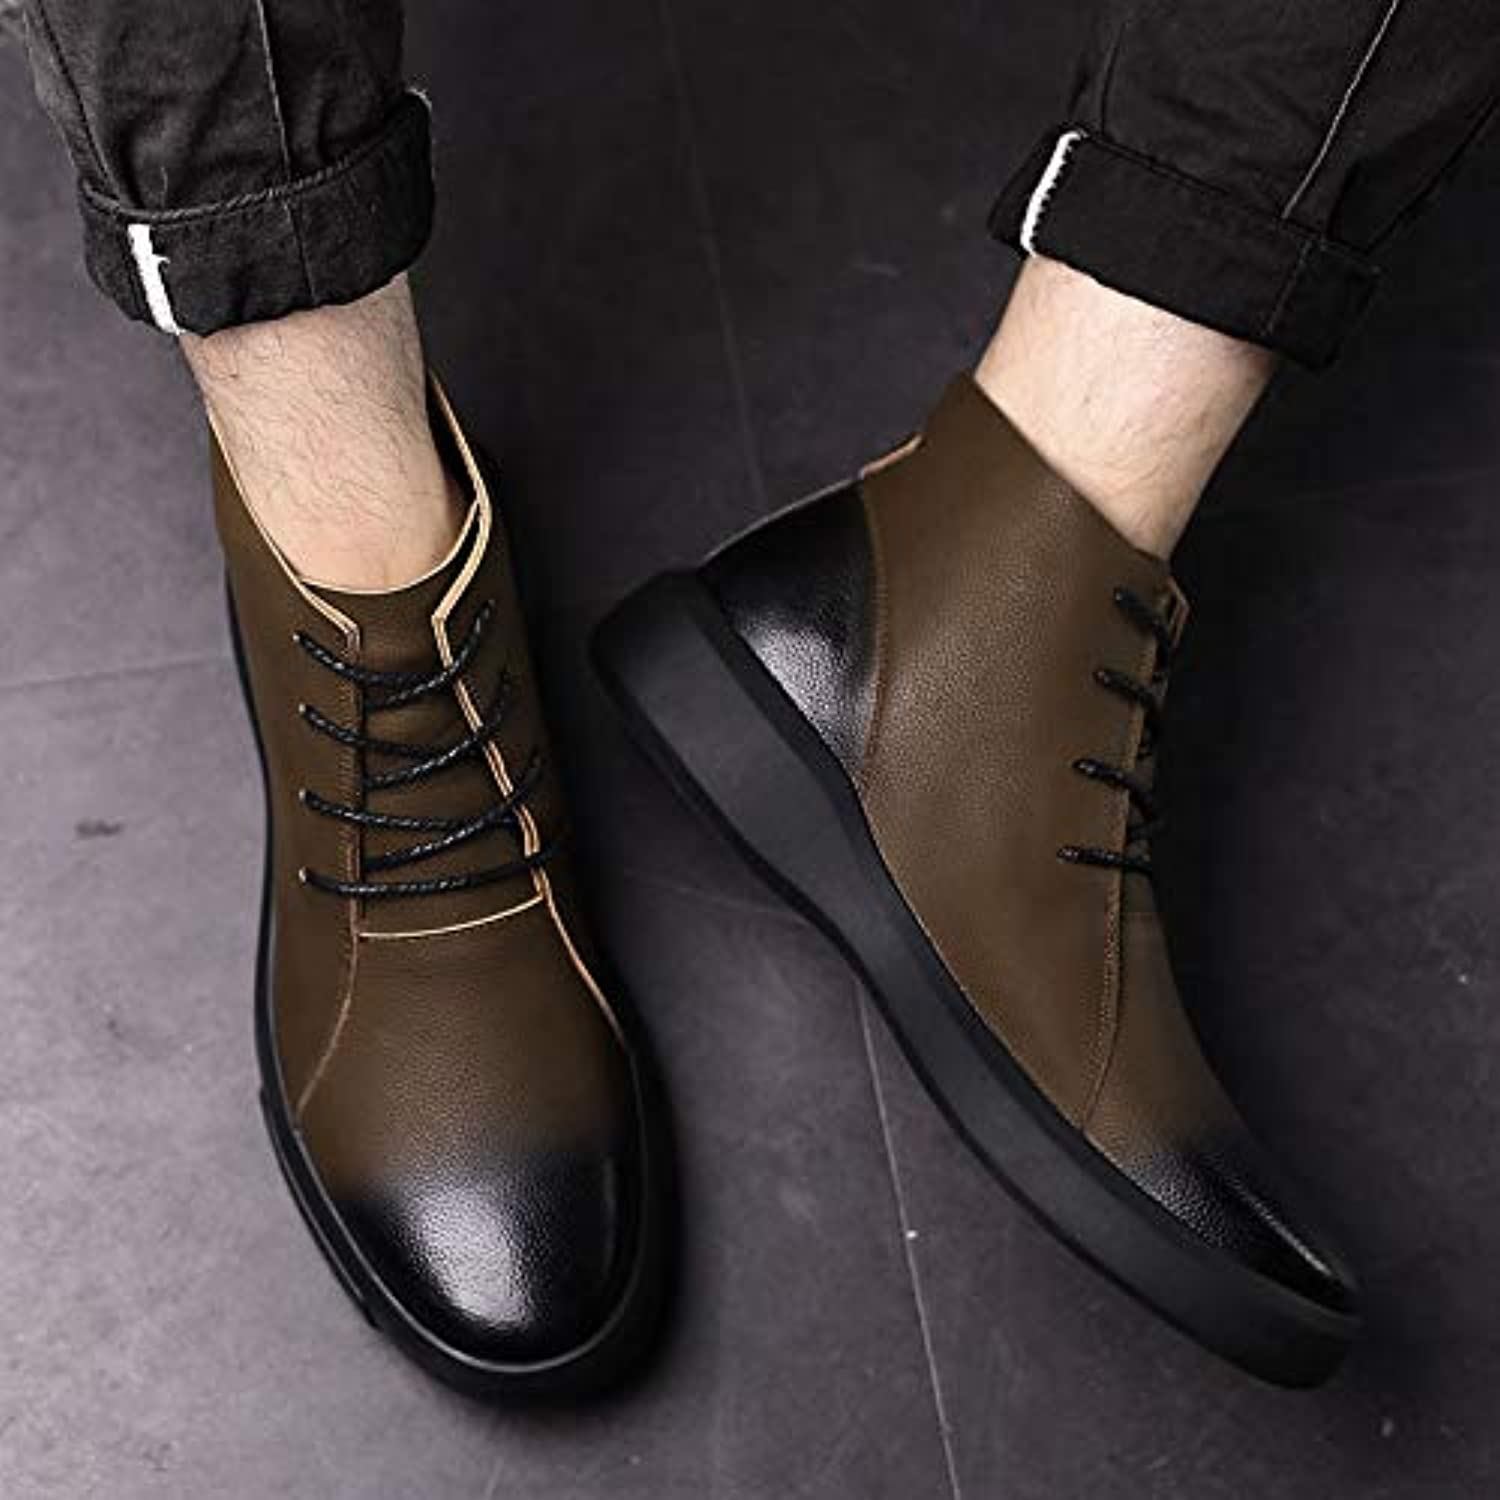 LOVDRAM Boots Men's Leather shoes Men'S Autumn And Winter Thick Men'S Casual shoes Men'S Leather Lace Men'S shoes Driving shoes Men'S Cotton shoes Business